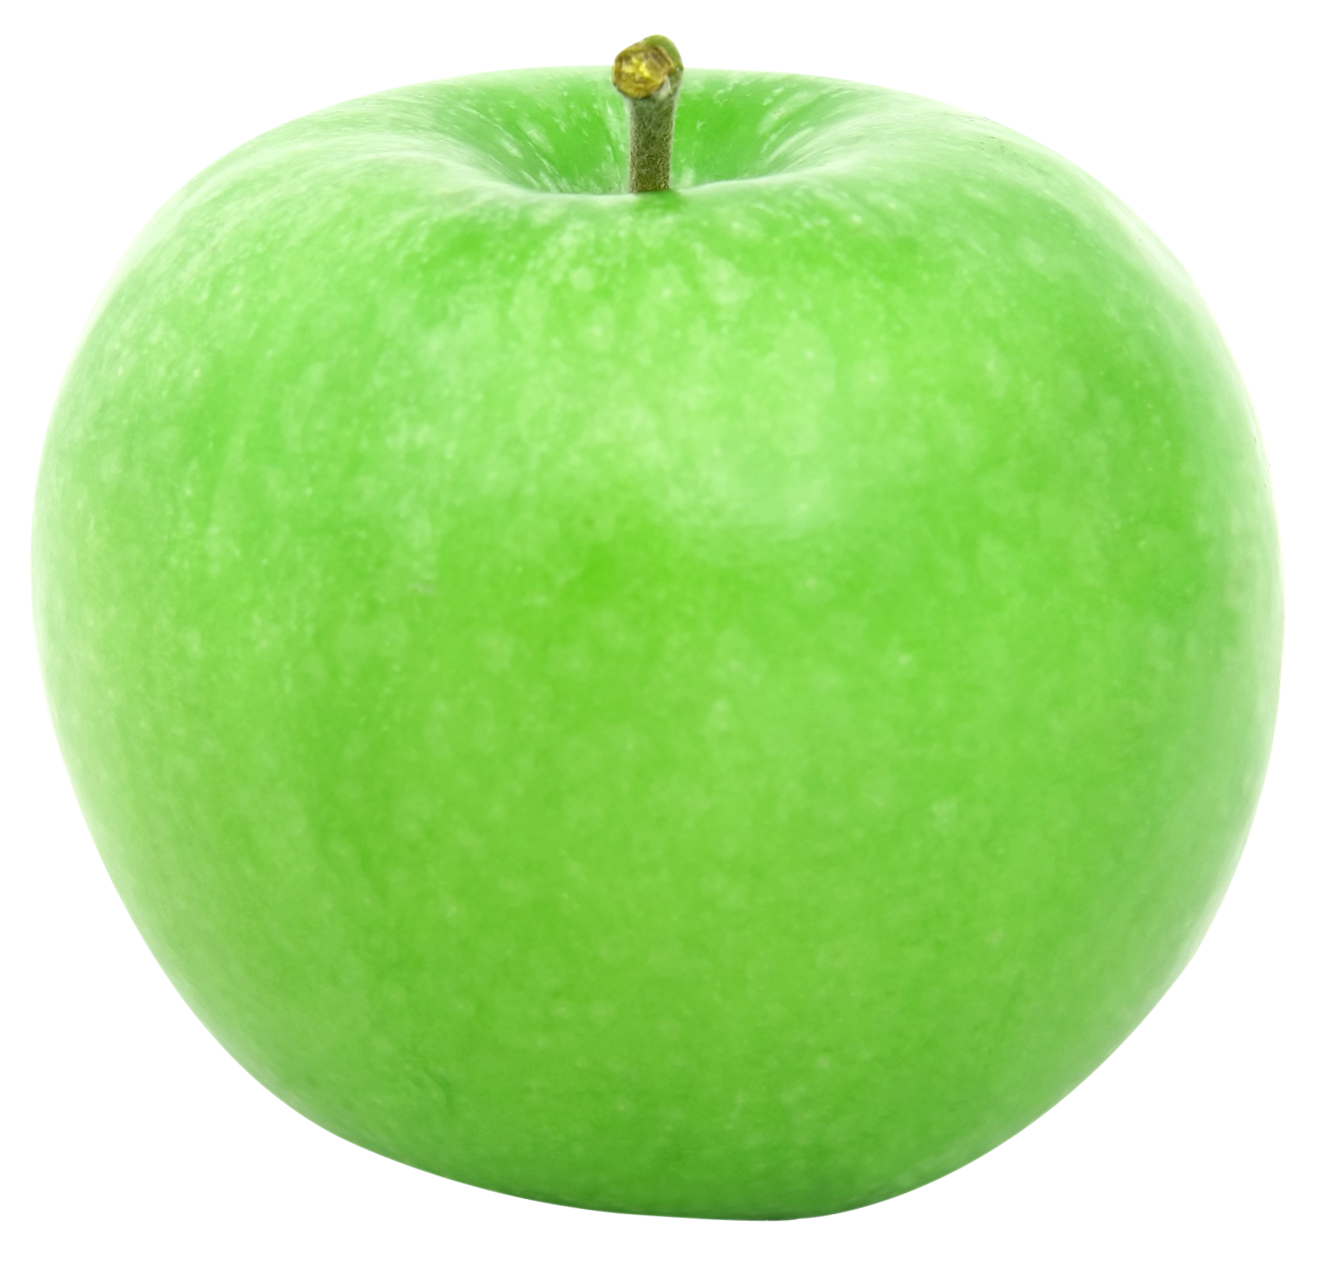 Green apple s png. Clipart apples solid